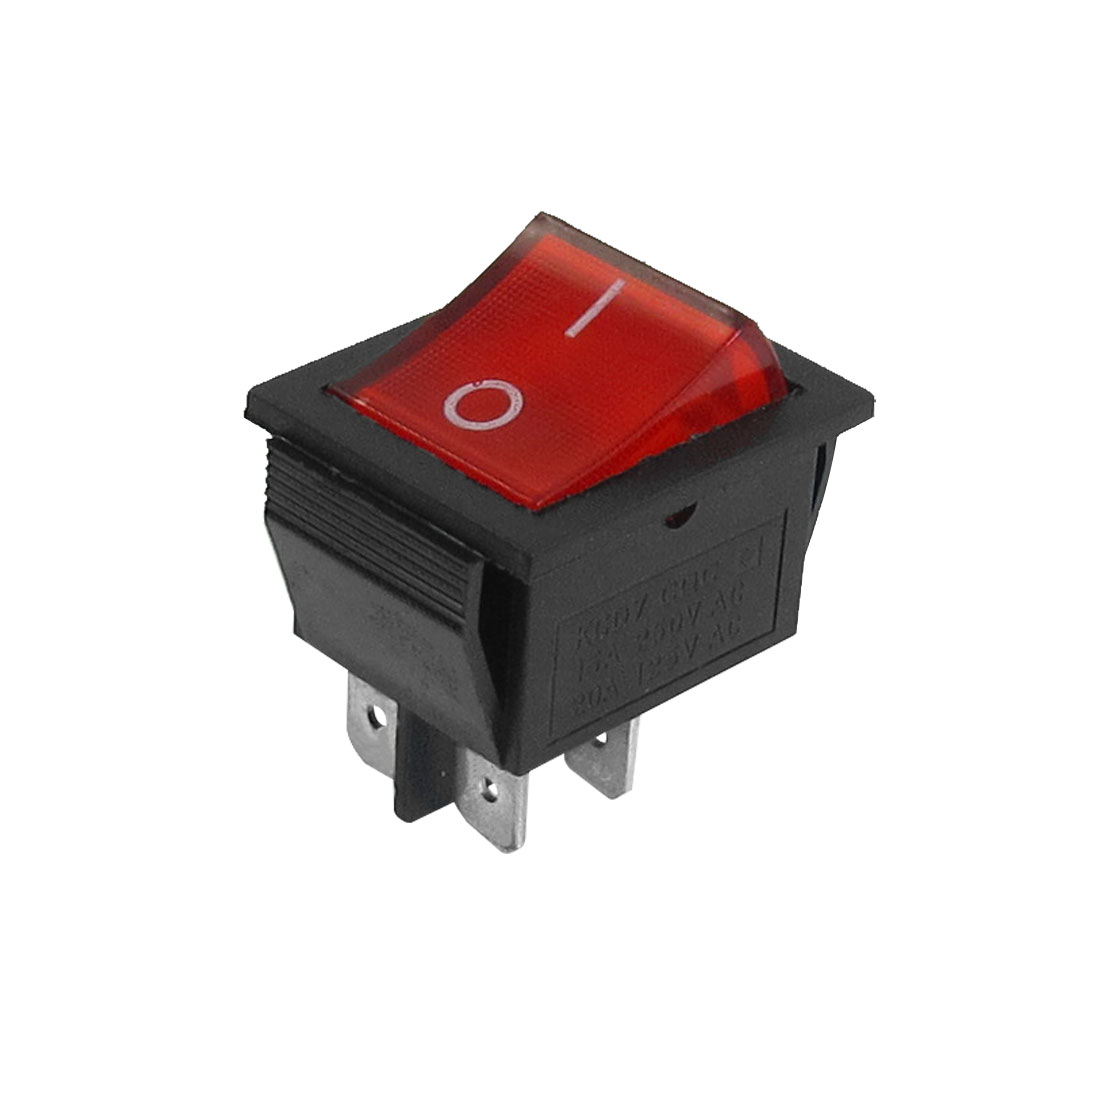 DPST 4 Pin On/Off 2 Position Boat Rocker Switch Red Light 15A/250V 20A/125V AC